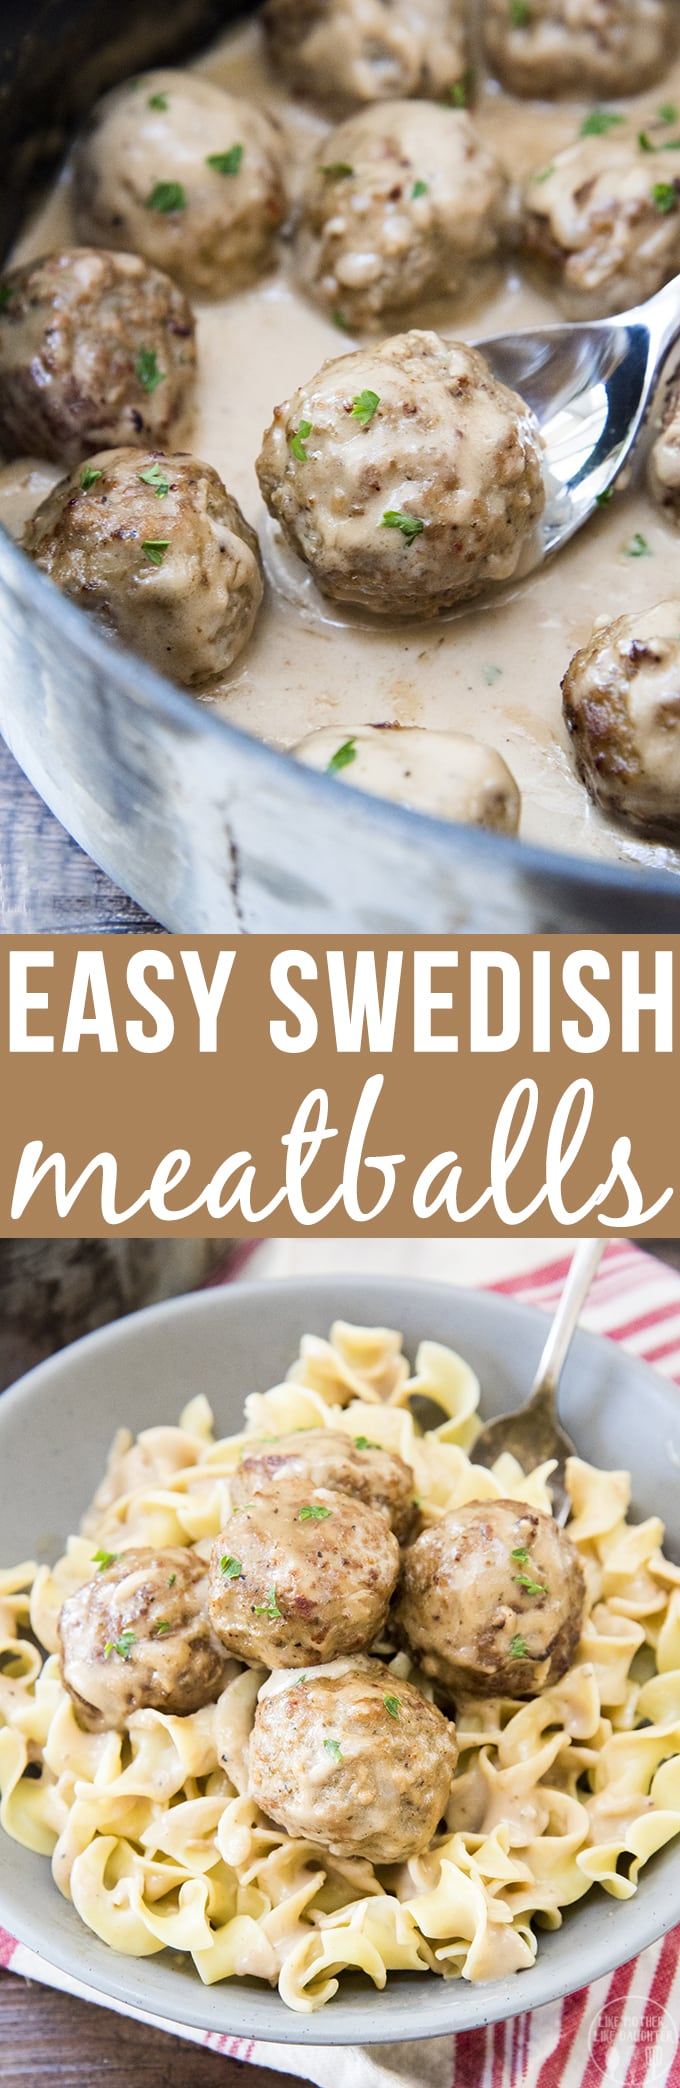 These easy Swedishmeatballs are covered in a rich and creamy sauce and ready in only about 15 minutes!